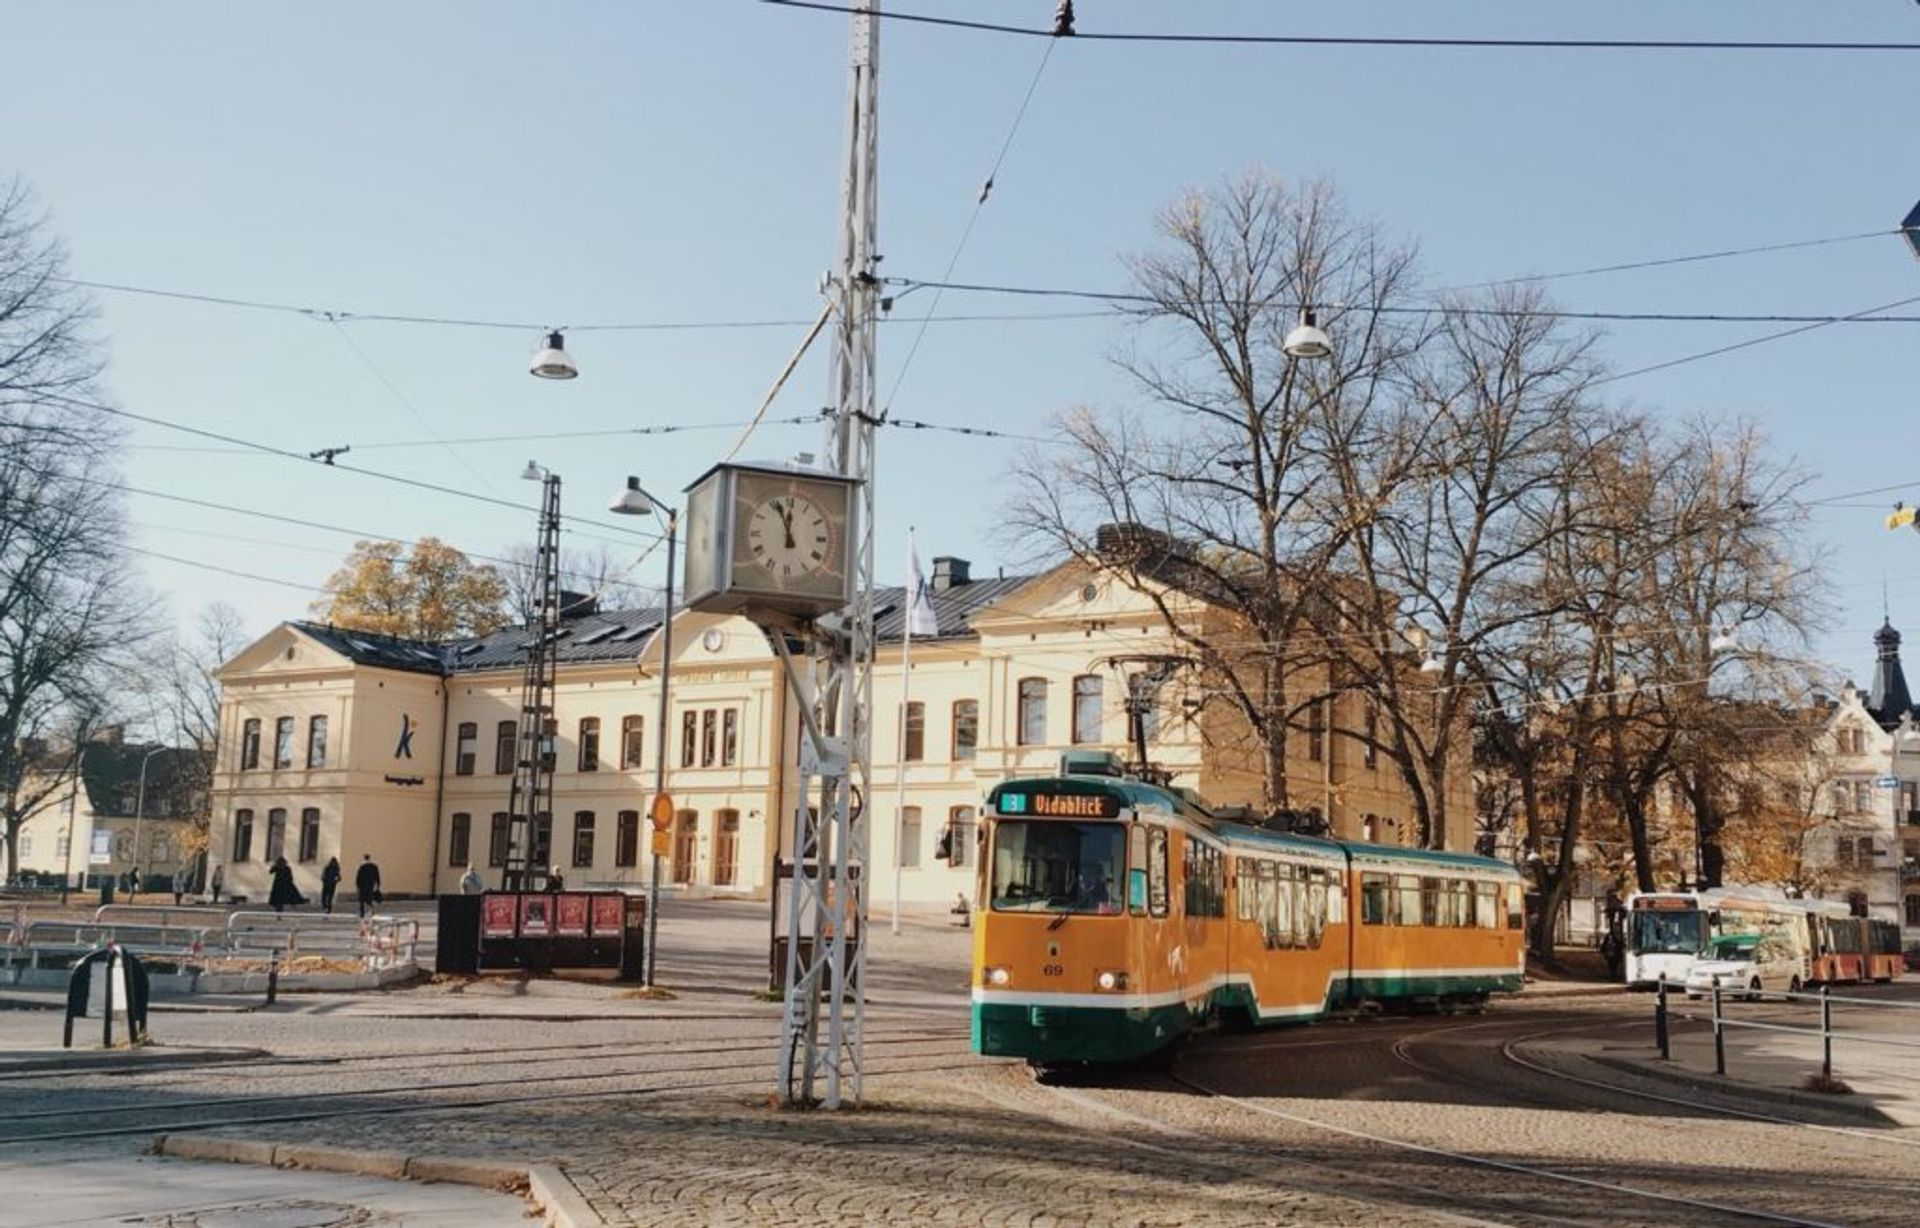 Yellow and green tram passing by a cream coloured building.